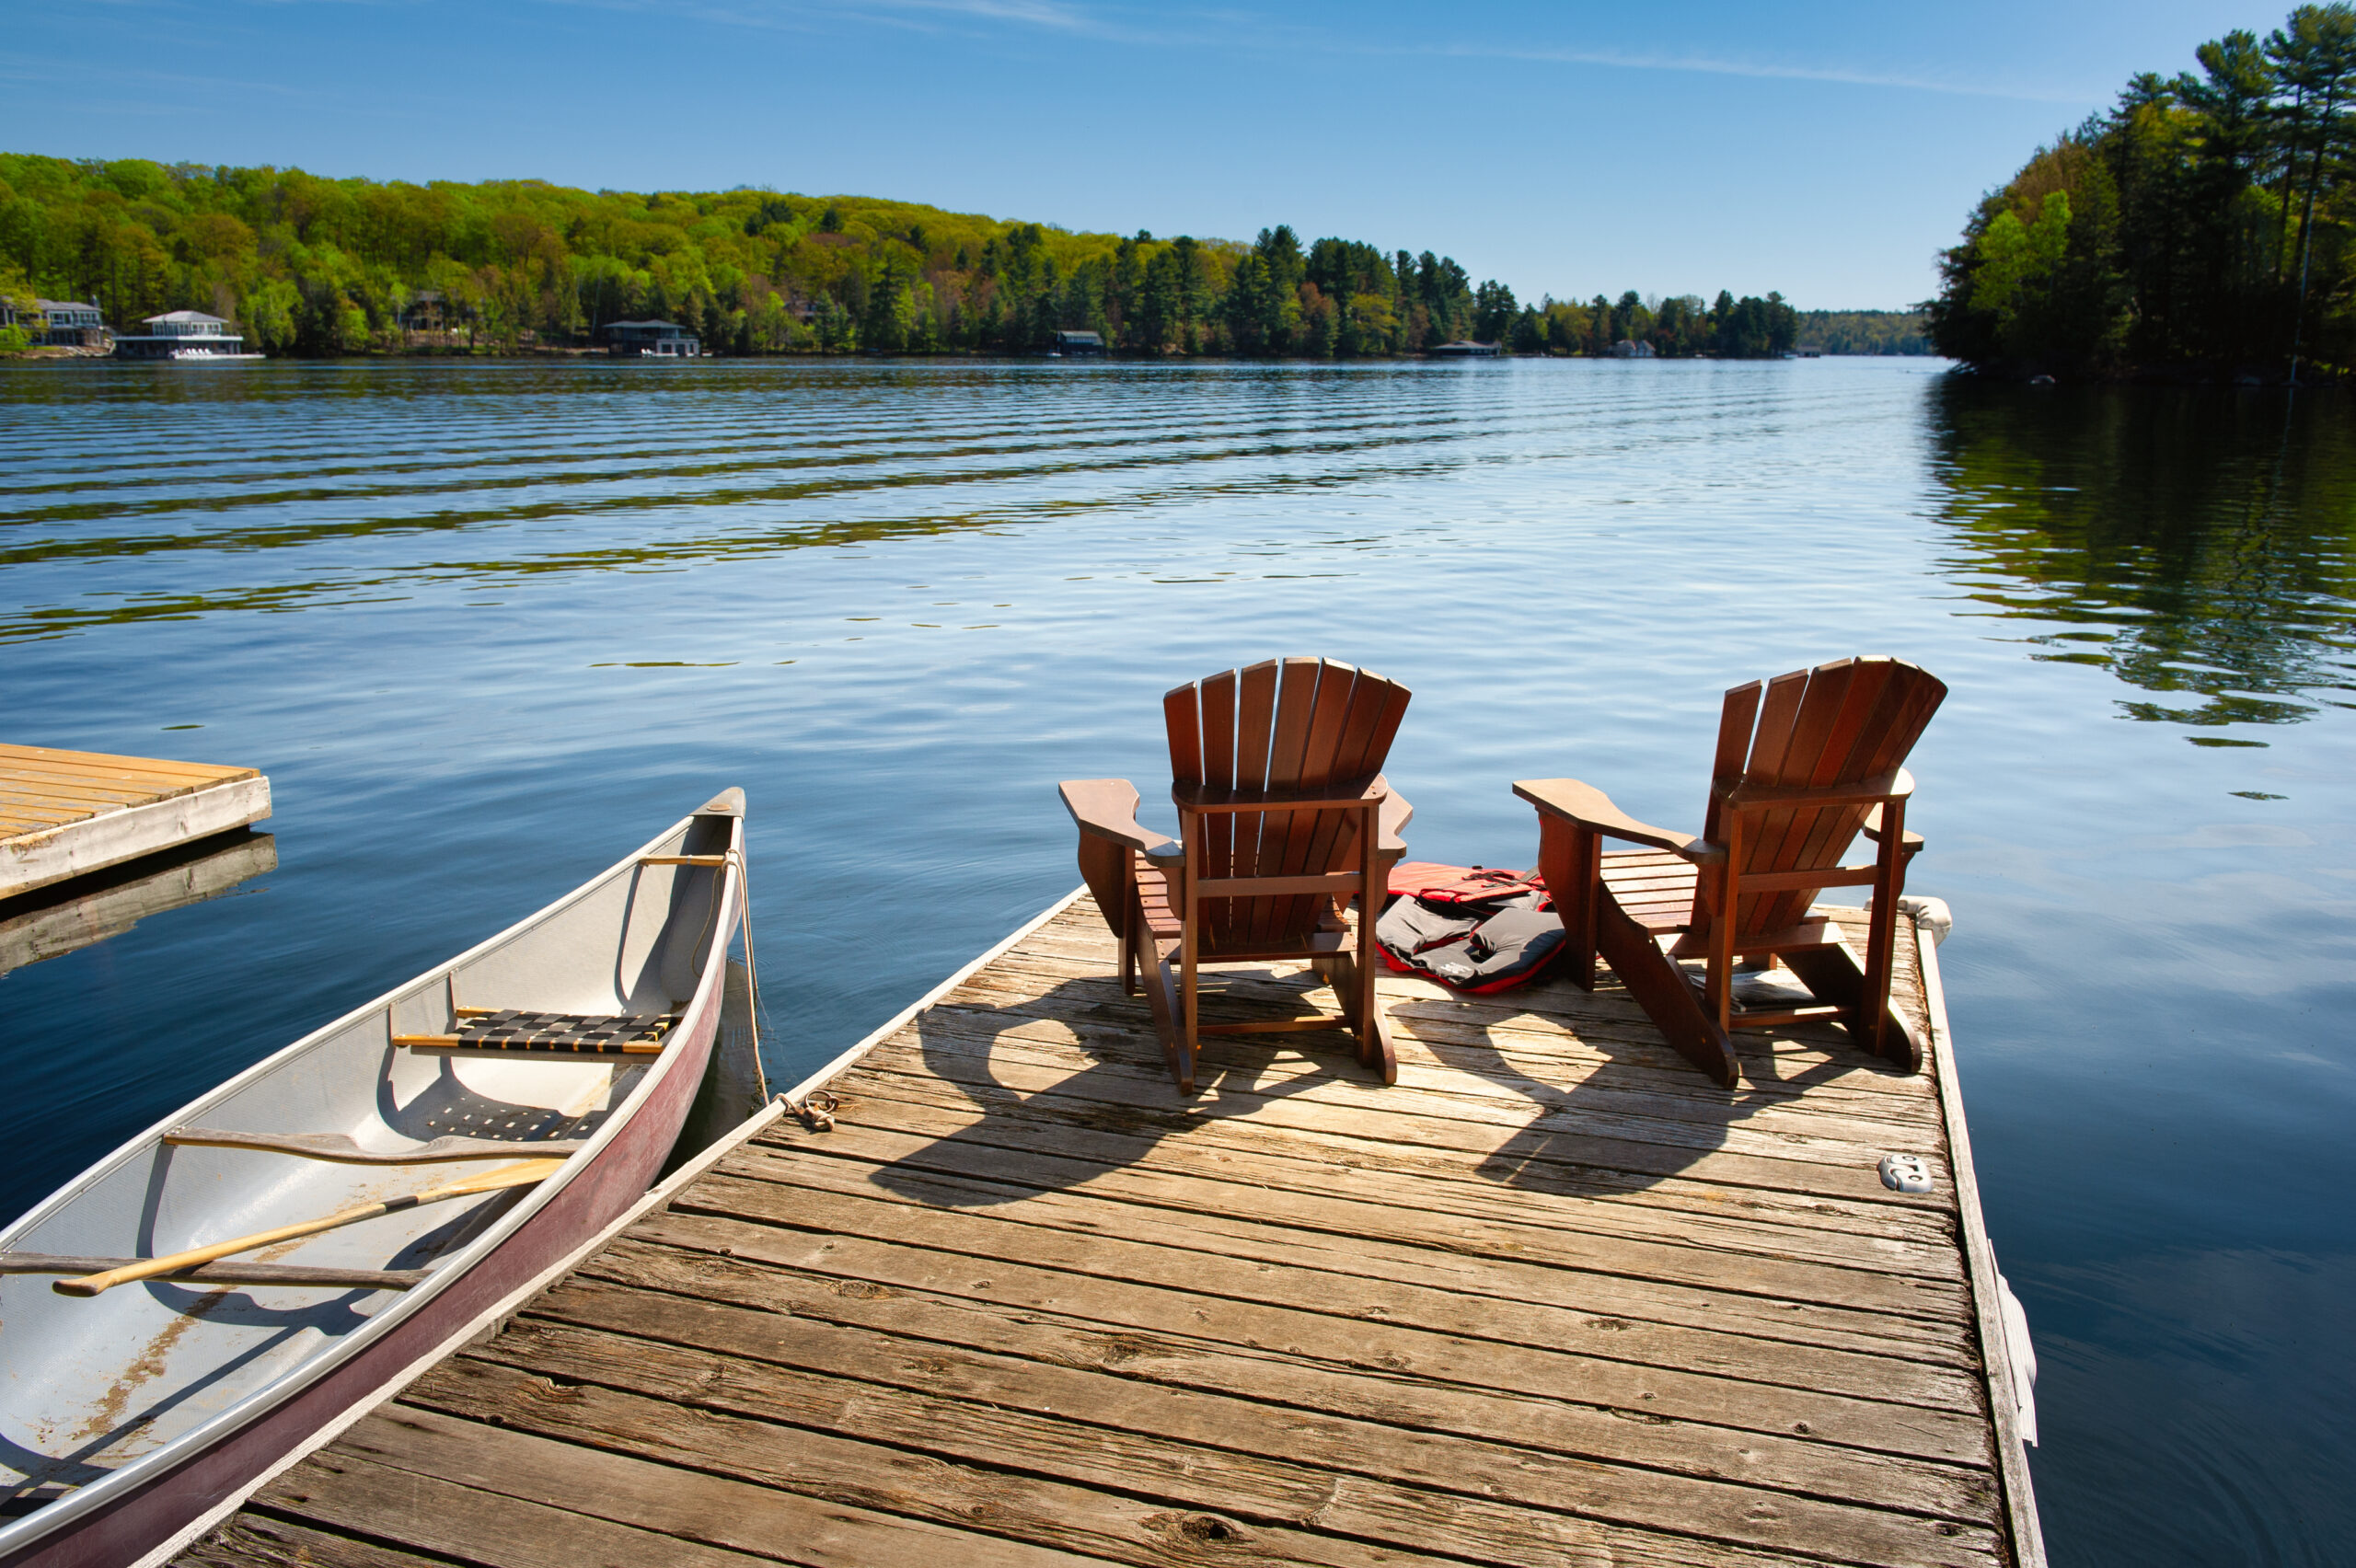 Ontario Canada Lake with canoes and chairs